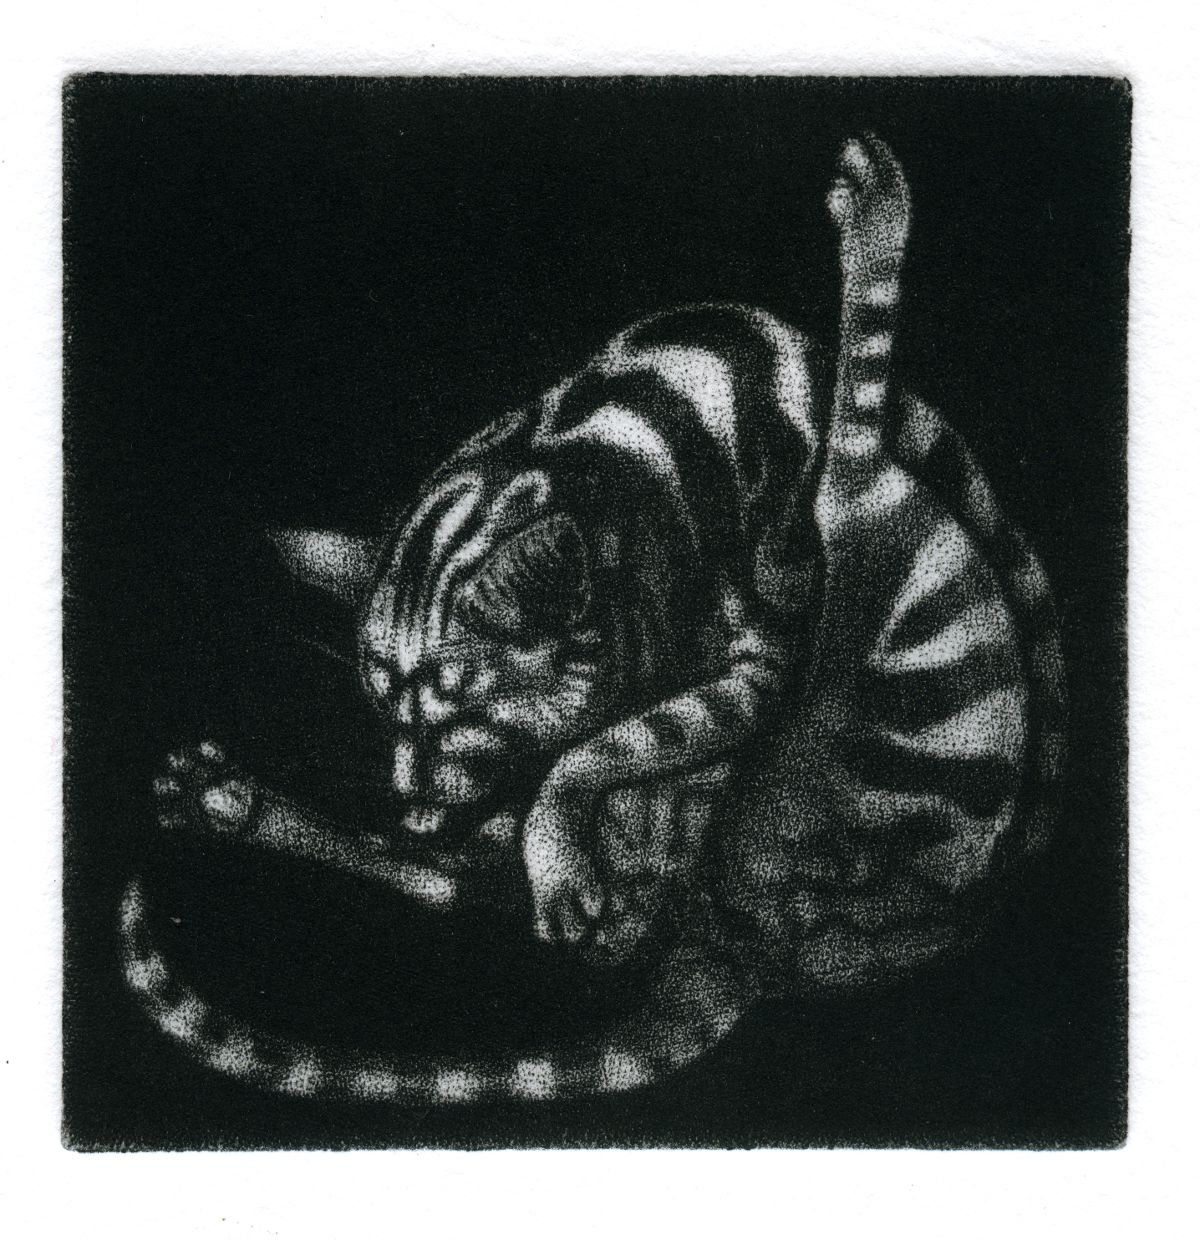 Stripy cat washing